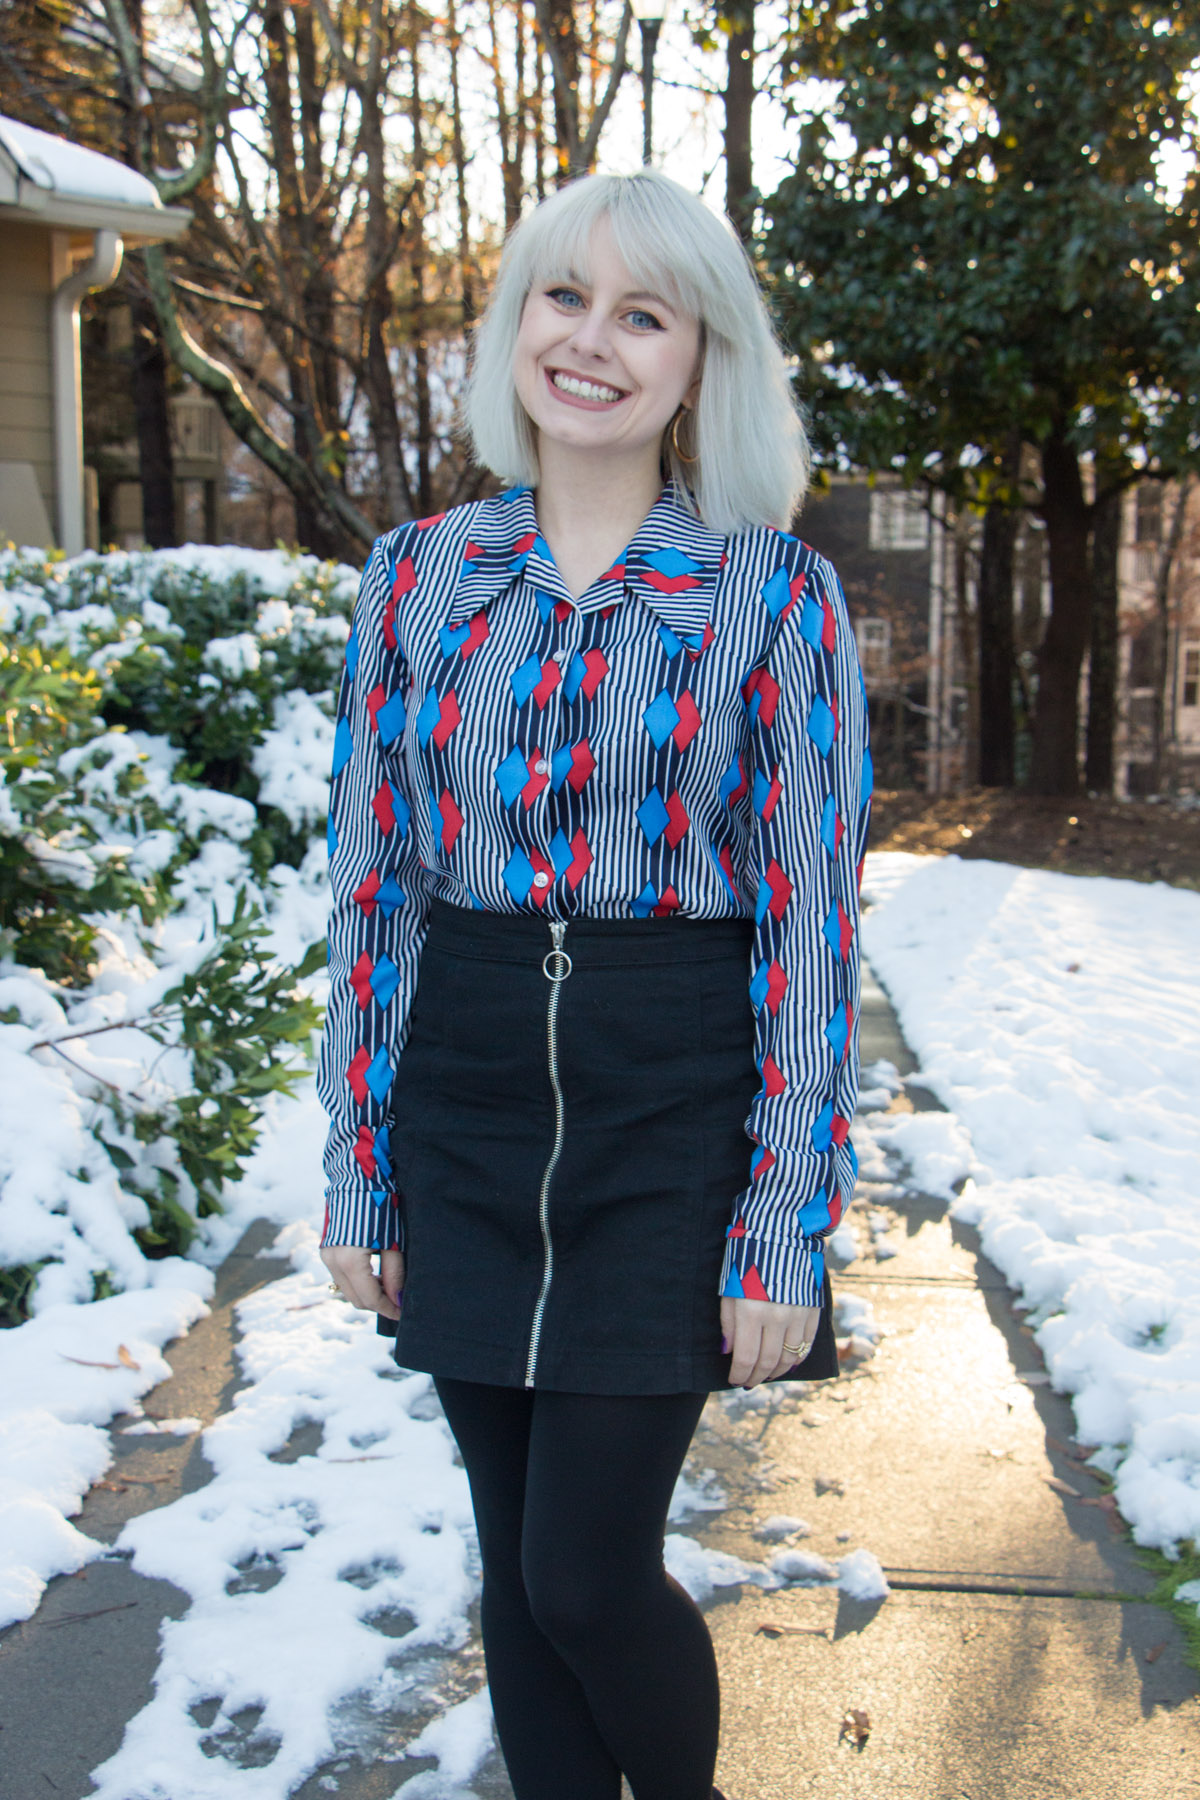 Vintage 70s wide collar button down top and black denim mini skirt